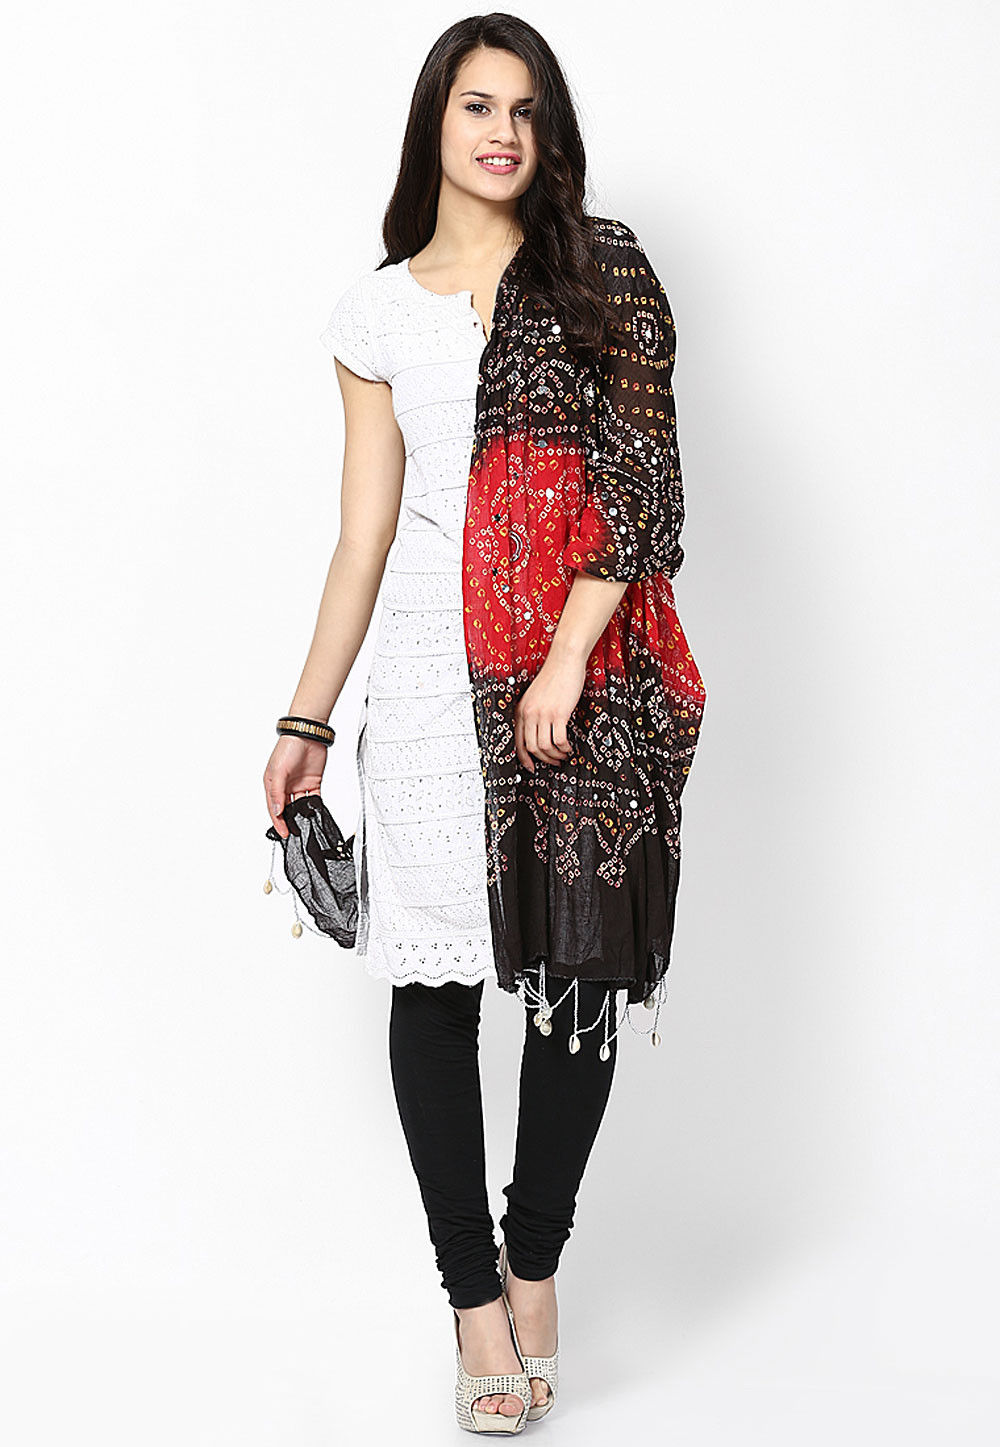 Bandhani Printed Cotton Dupatta in Black and Red